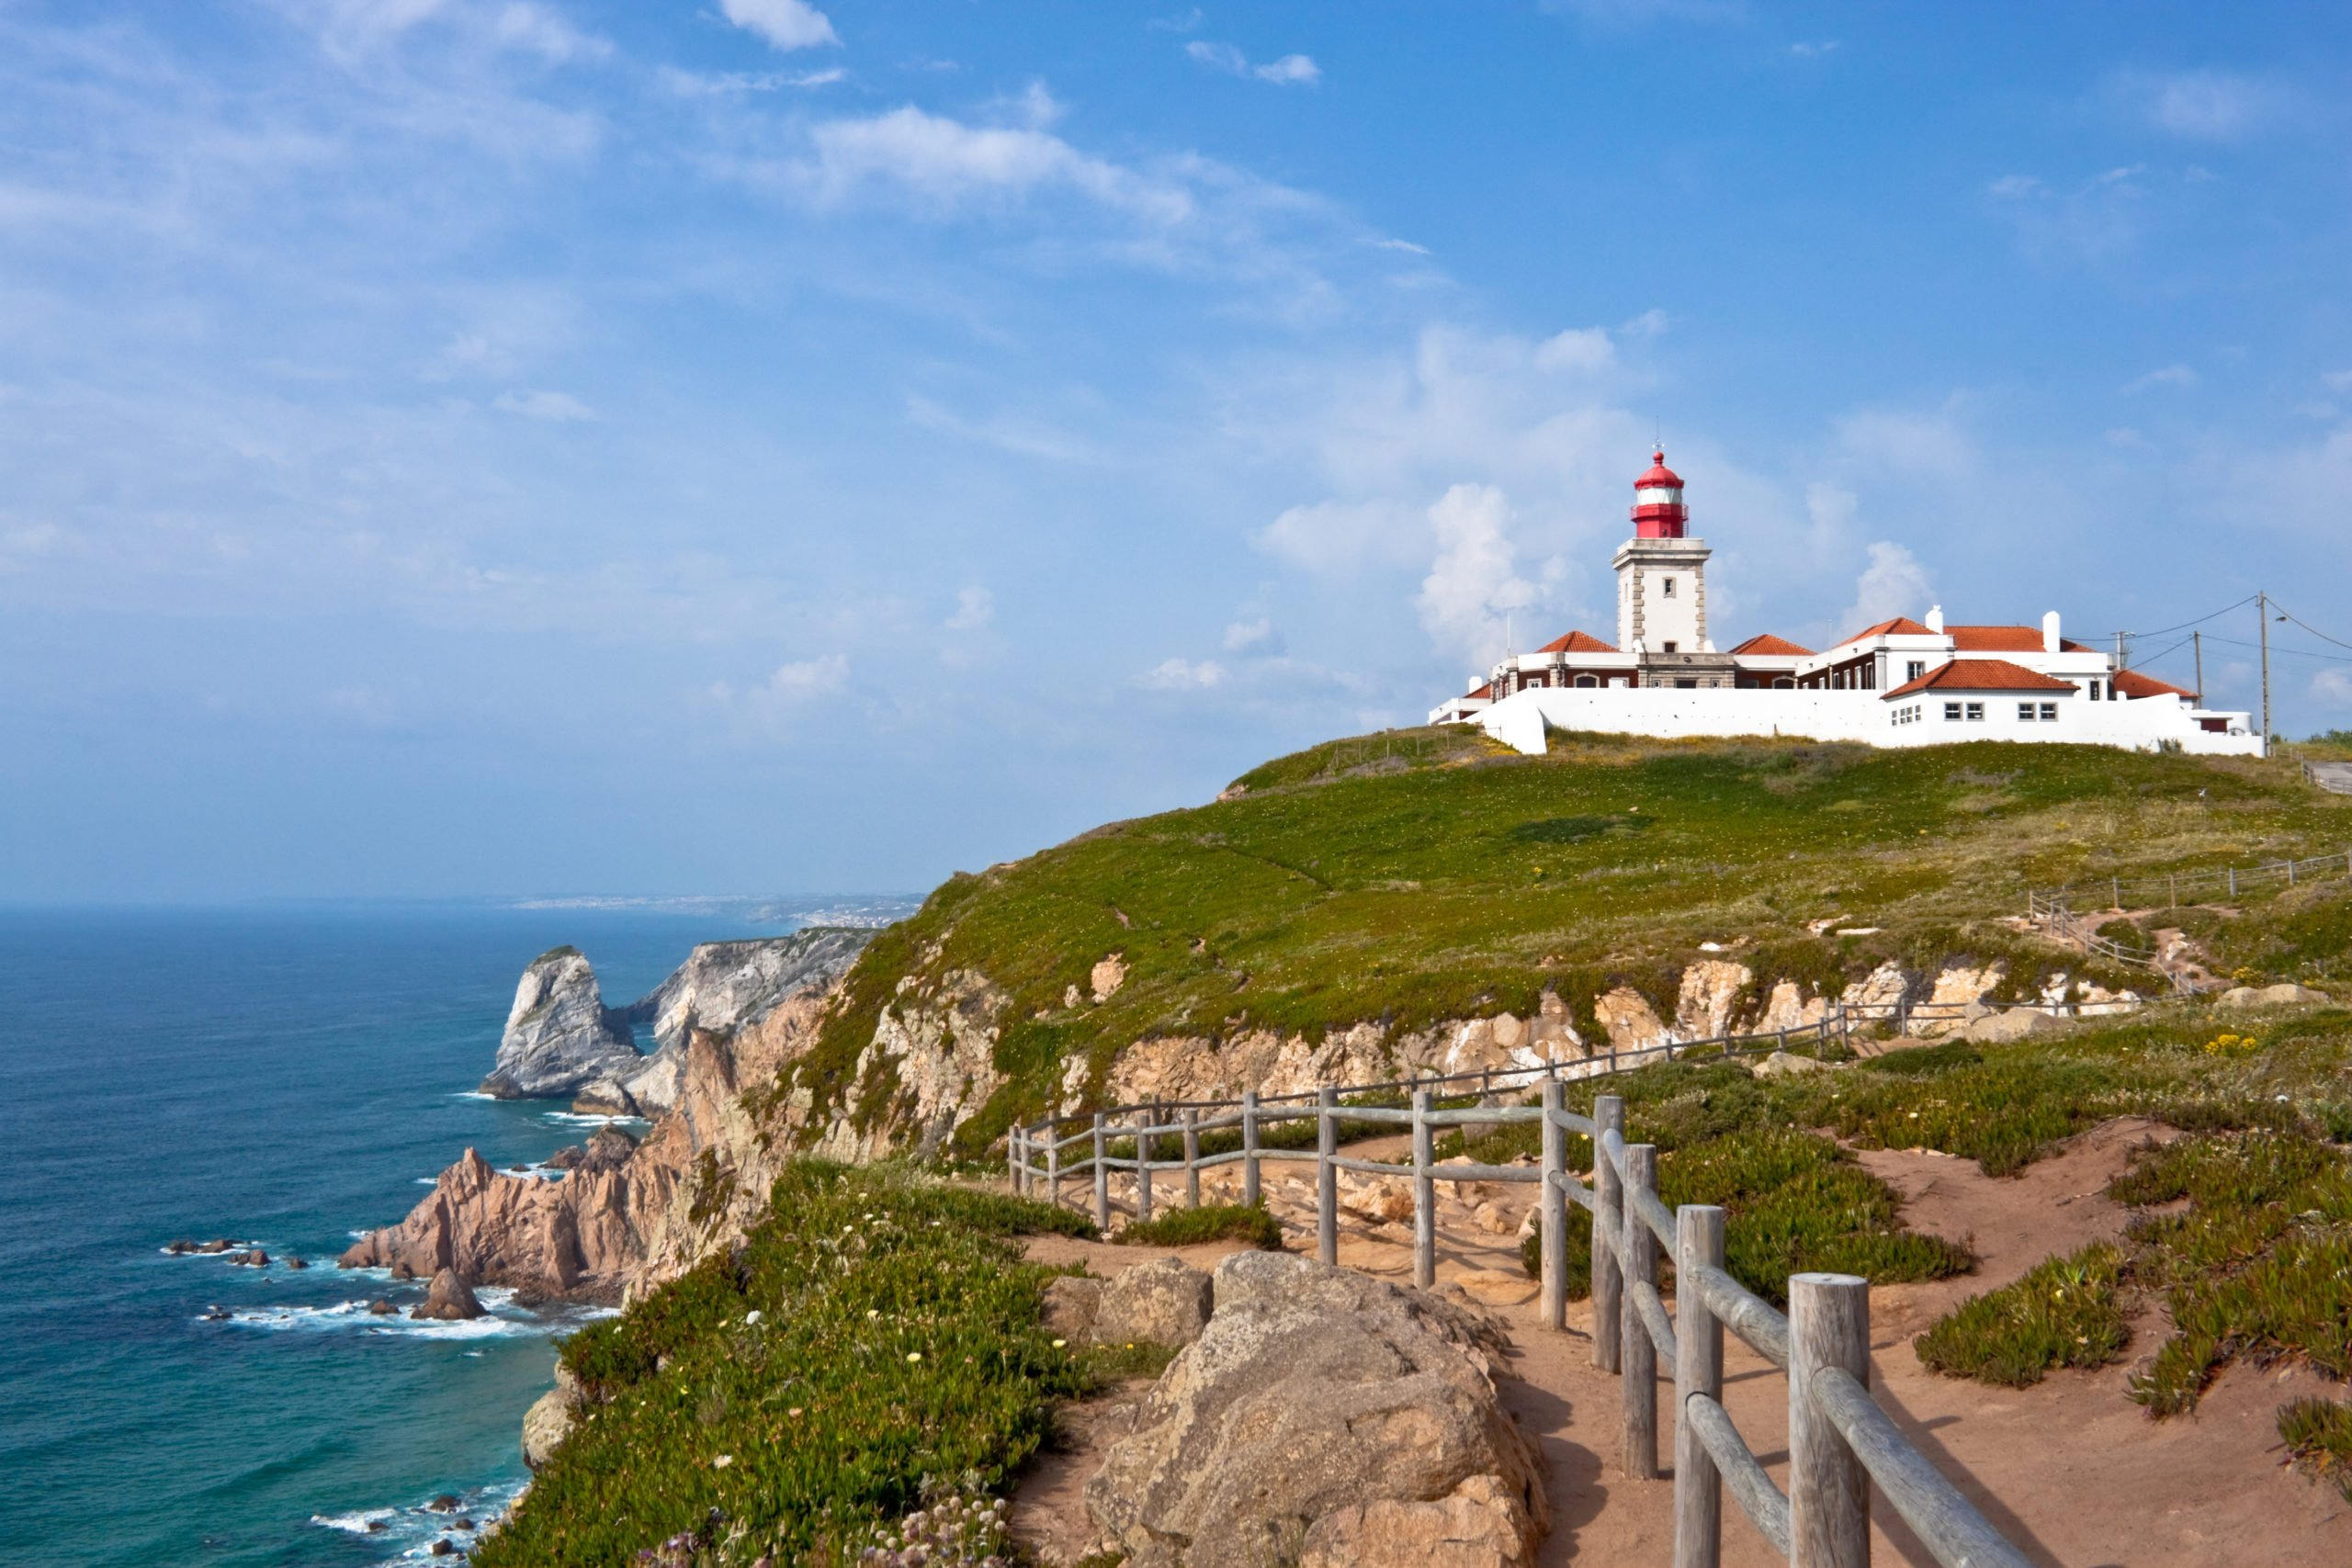 Visit The Lighthouse At The Cabo Da Roca On The Sintra Half Day Tour From Lisbon